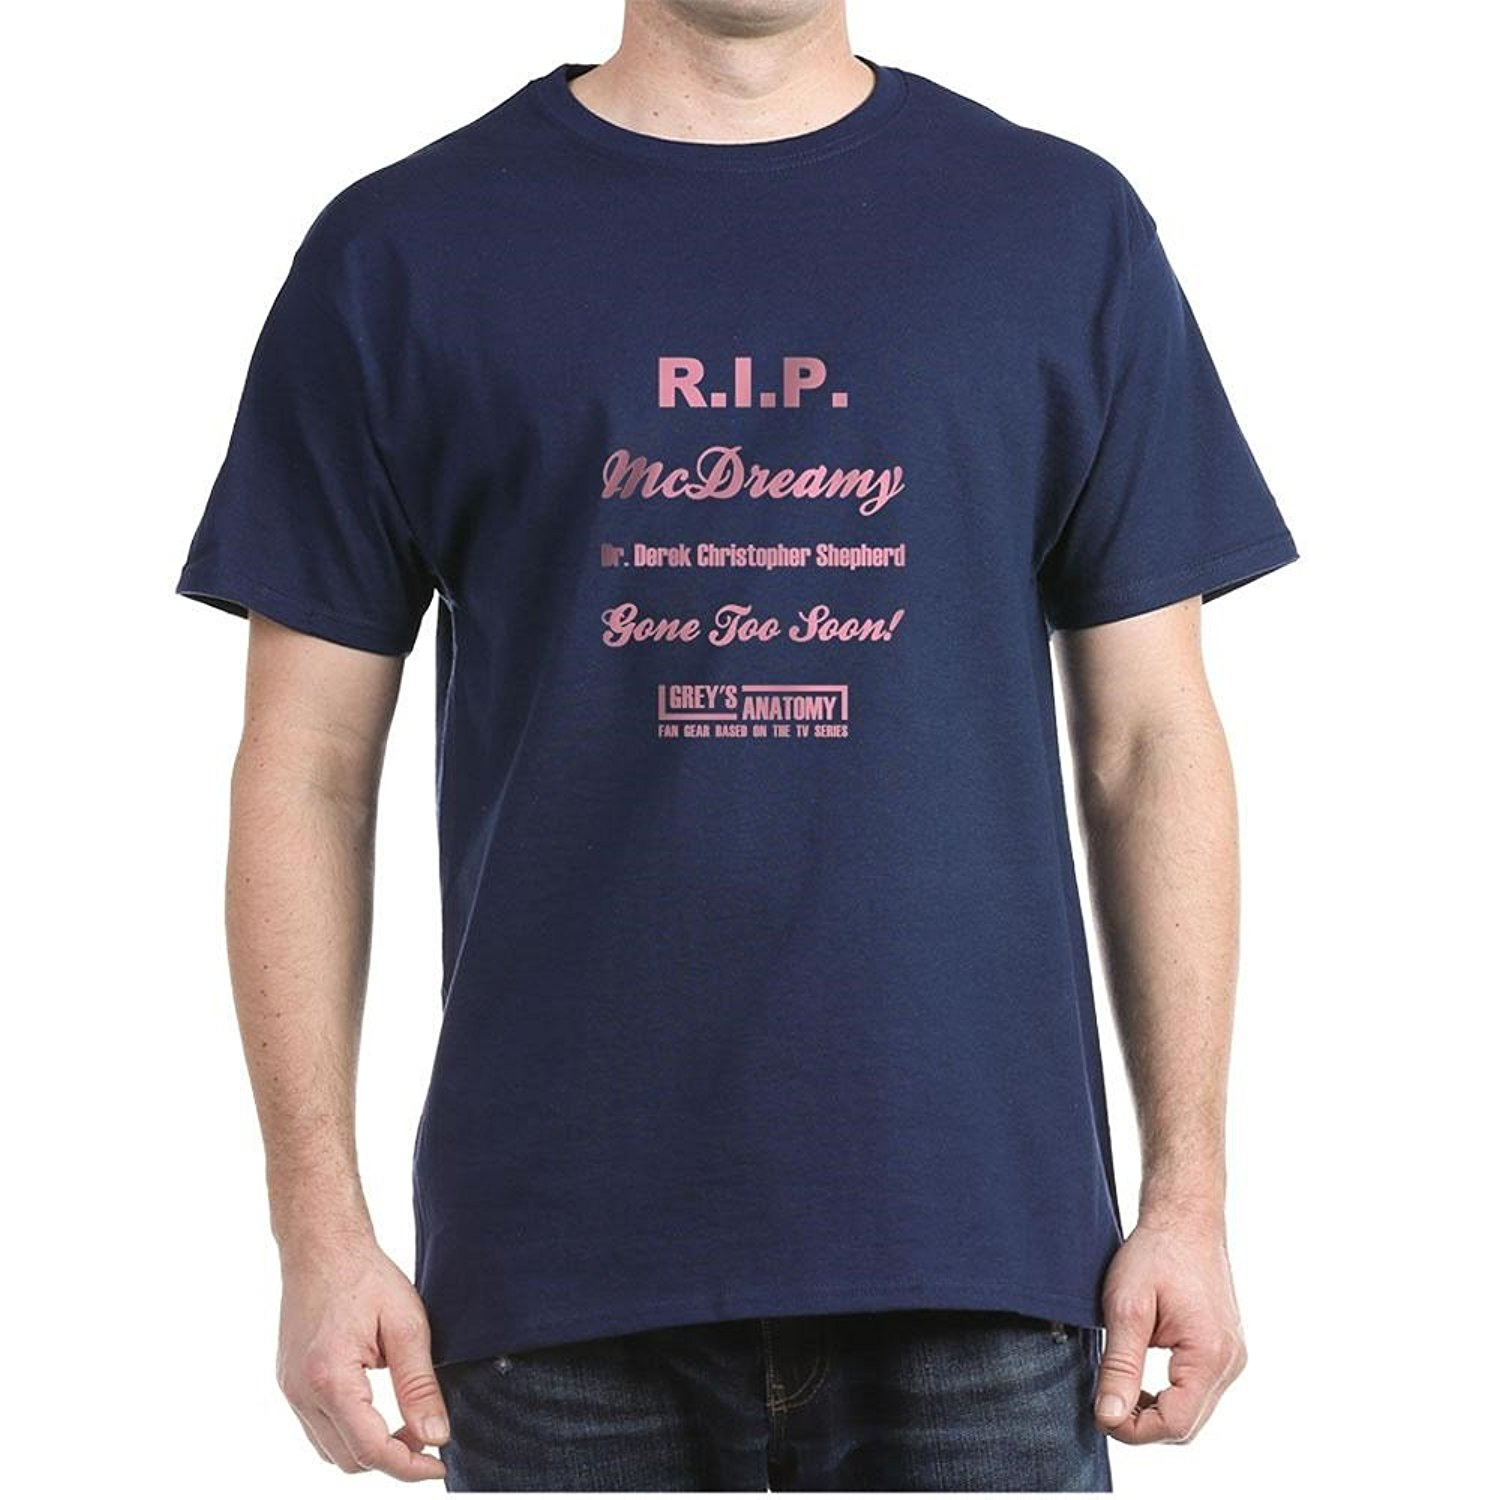 R.I.P. McDREAMY - 100% Cotton T-Shirt T Shirts Short Sleeve Leisure Fashion Summer Cotton Shirts Cheap Wholesale T-Shirt